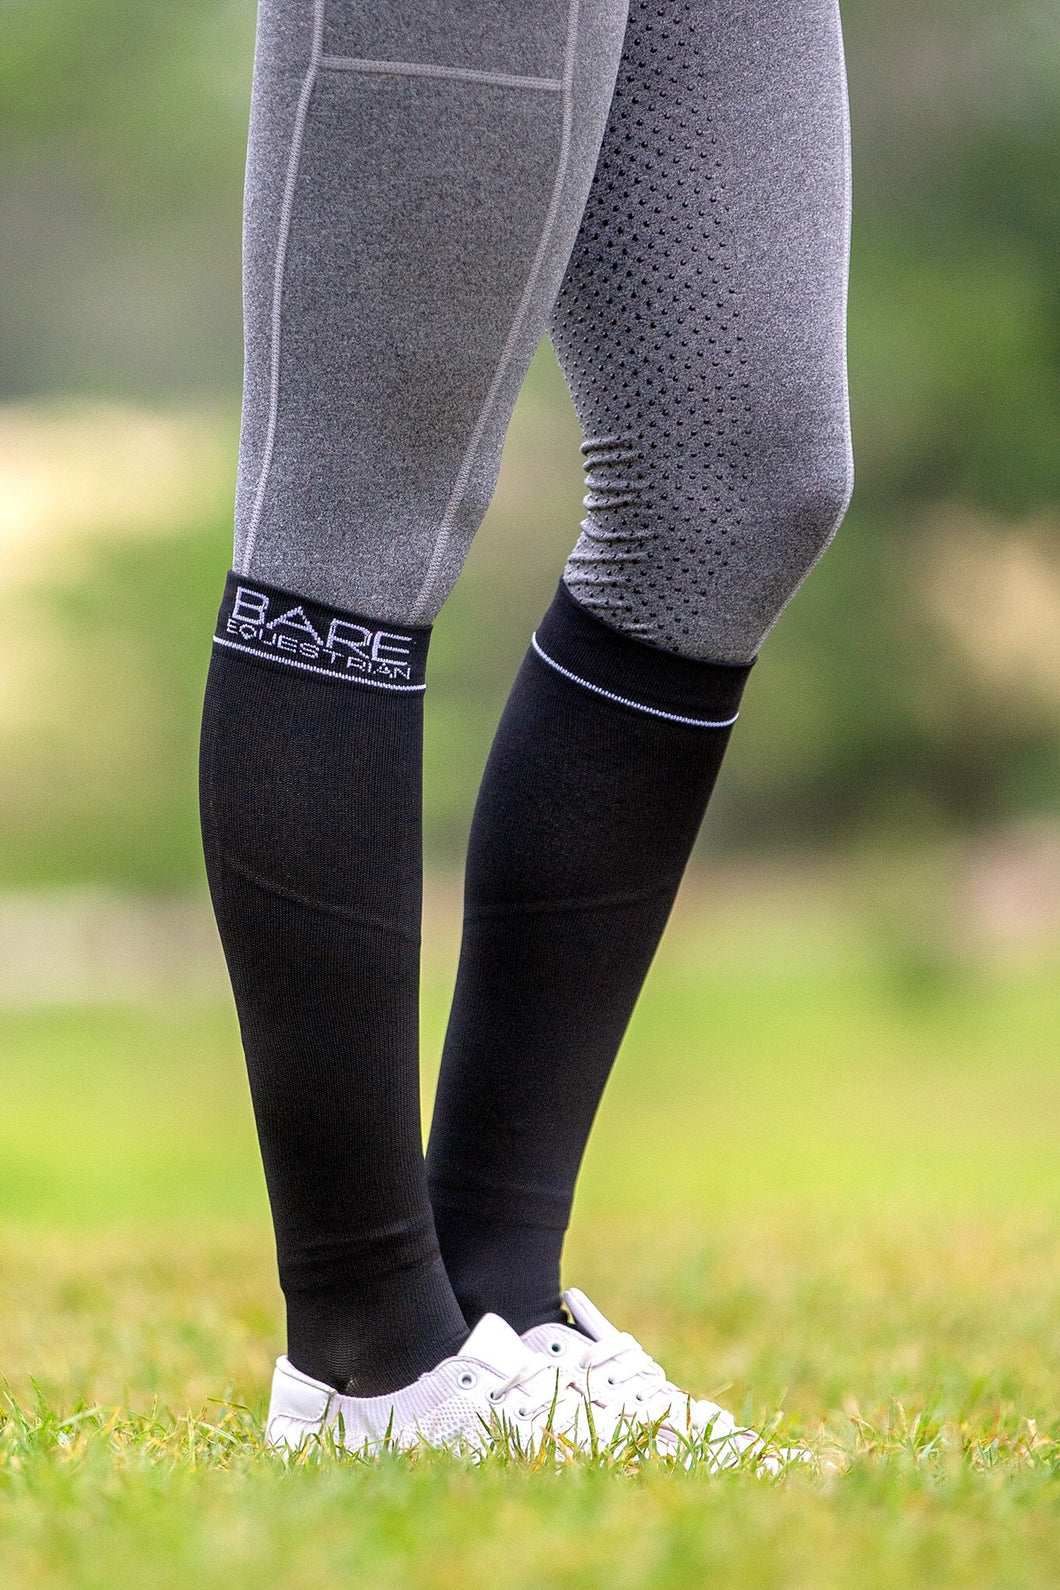 BARE Compression Socks